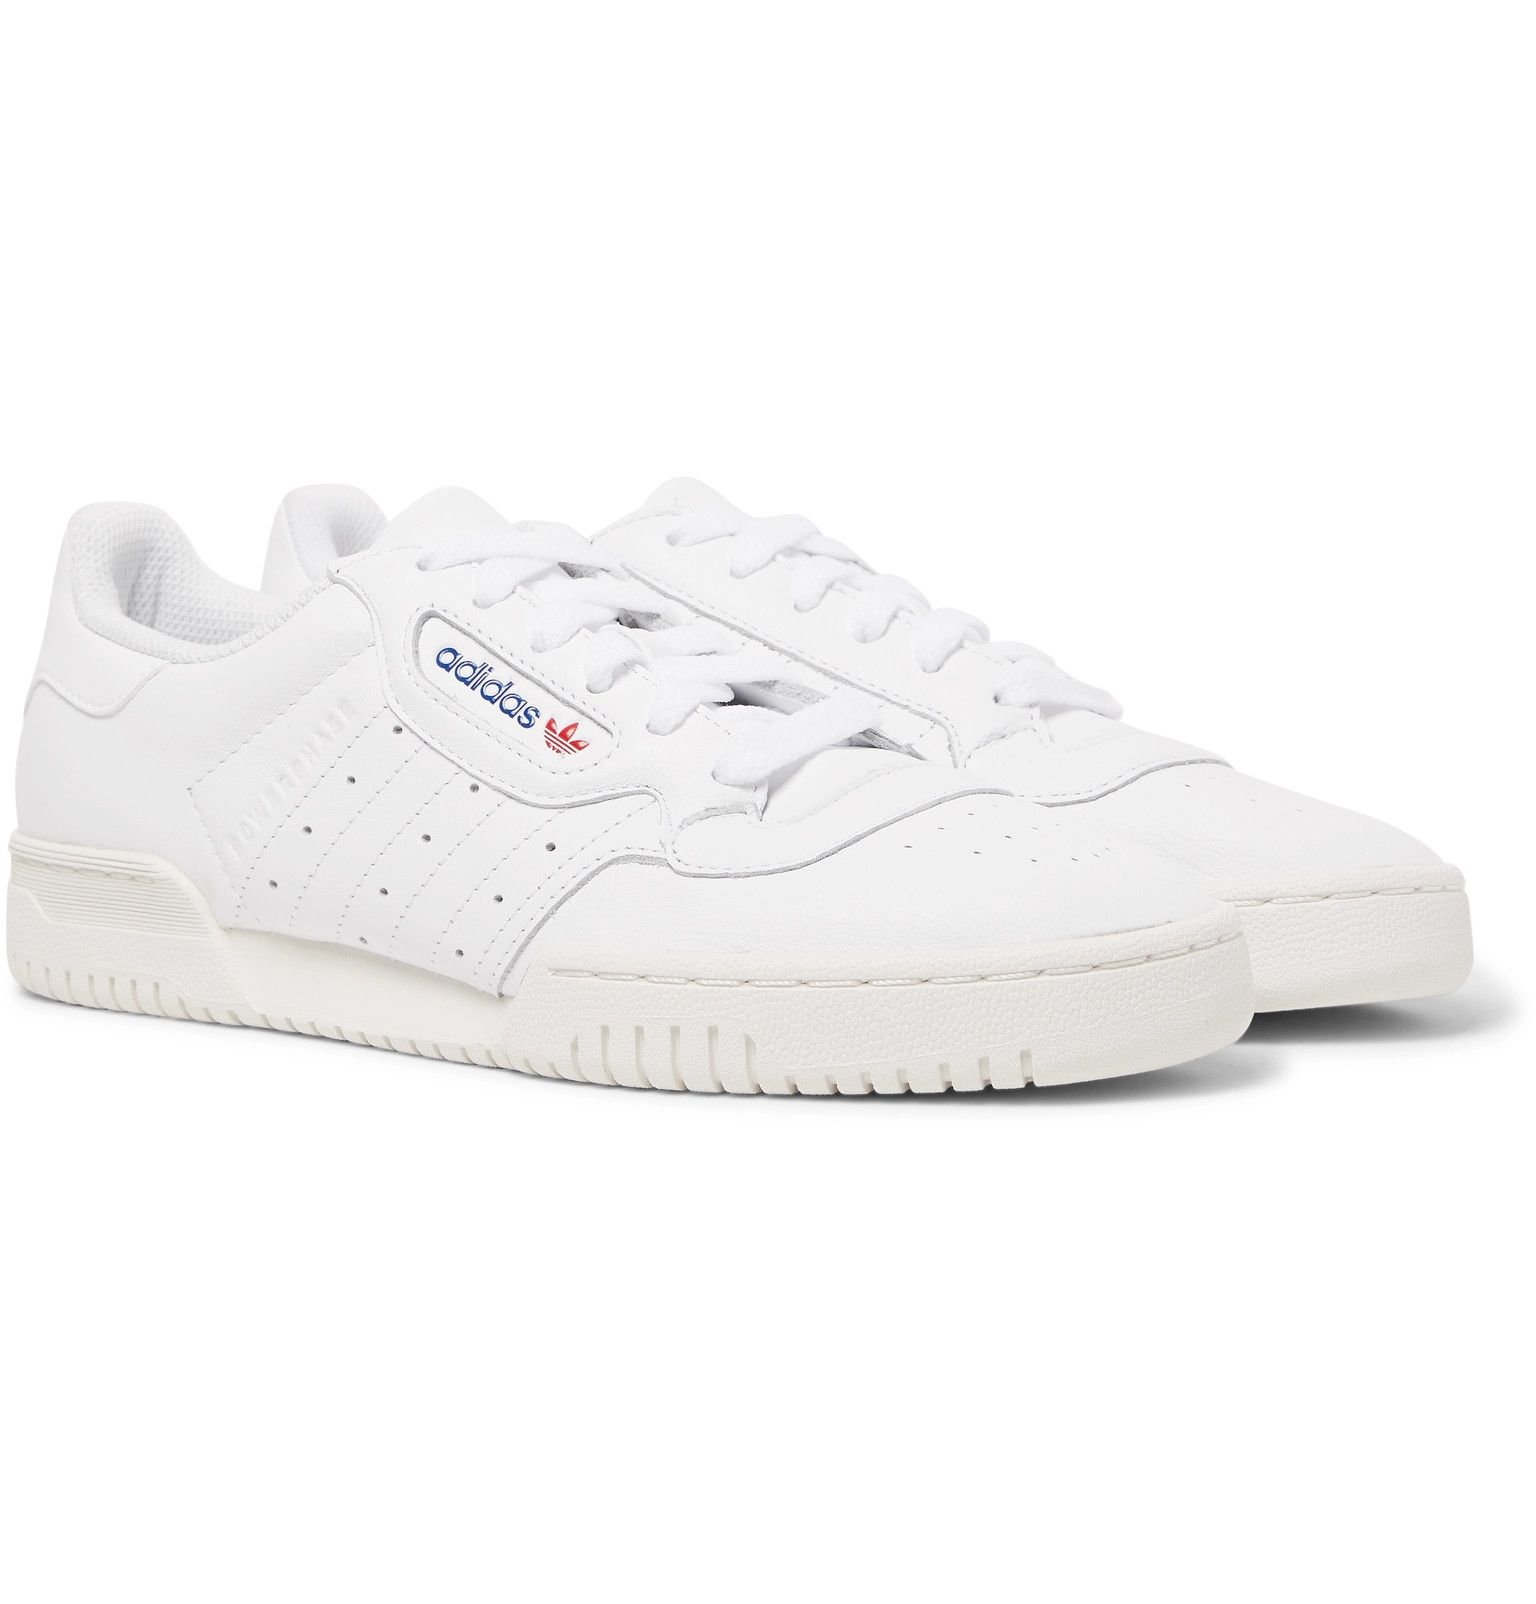 adidas Consortium Powerphase Leather Sneakers   Leather